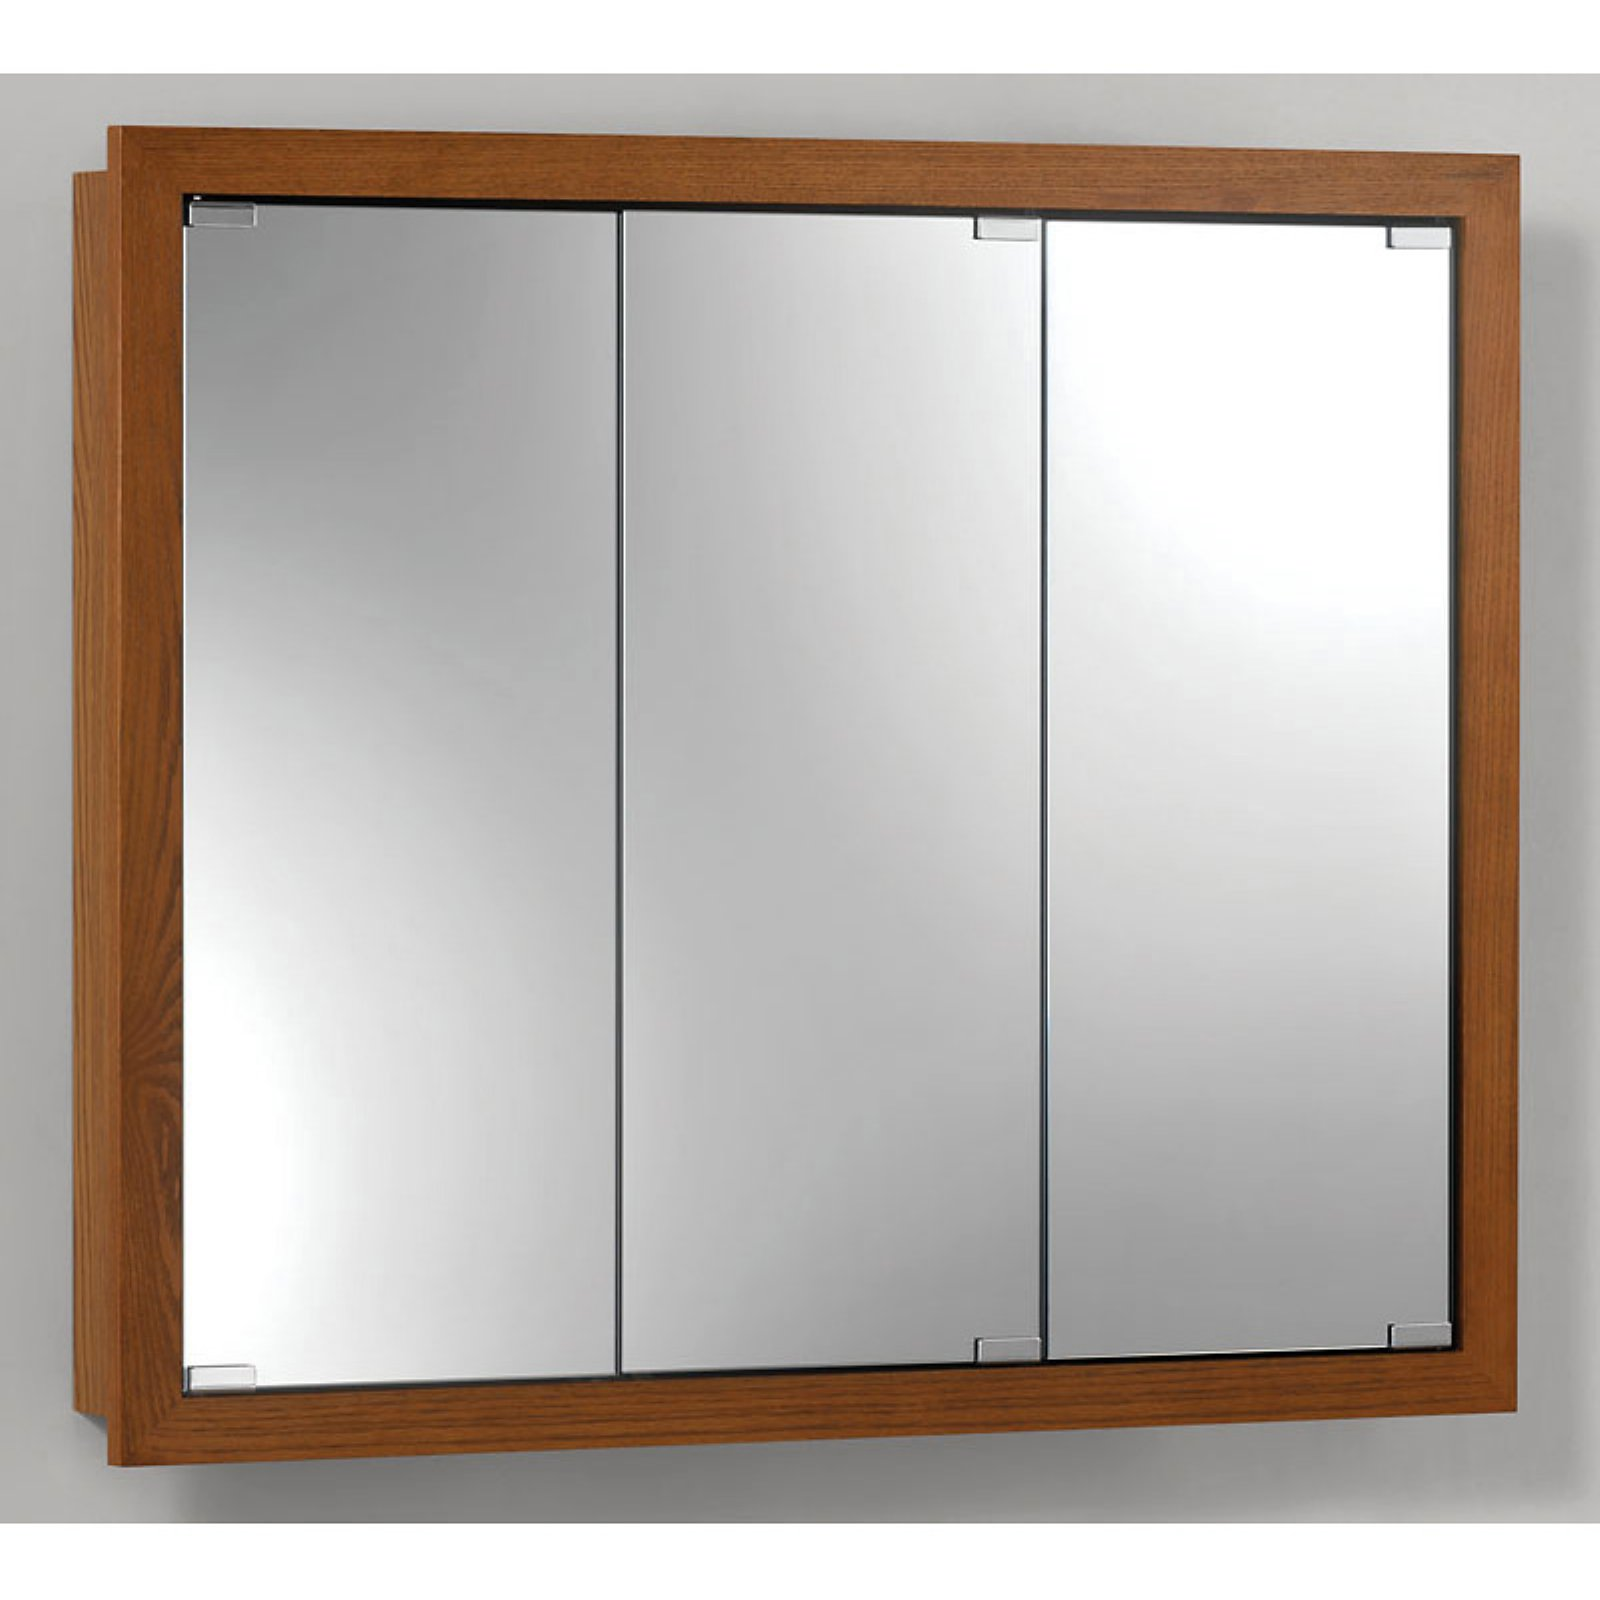 Jensen Medicine Cabinet Granville Tri-View 30W x 26H in. Surface Mount Medicine Cabinet by Lighthouse Distribution Corp